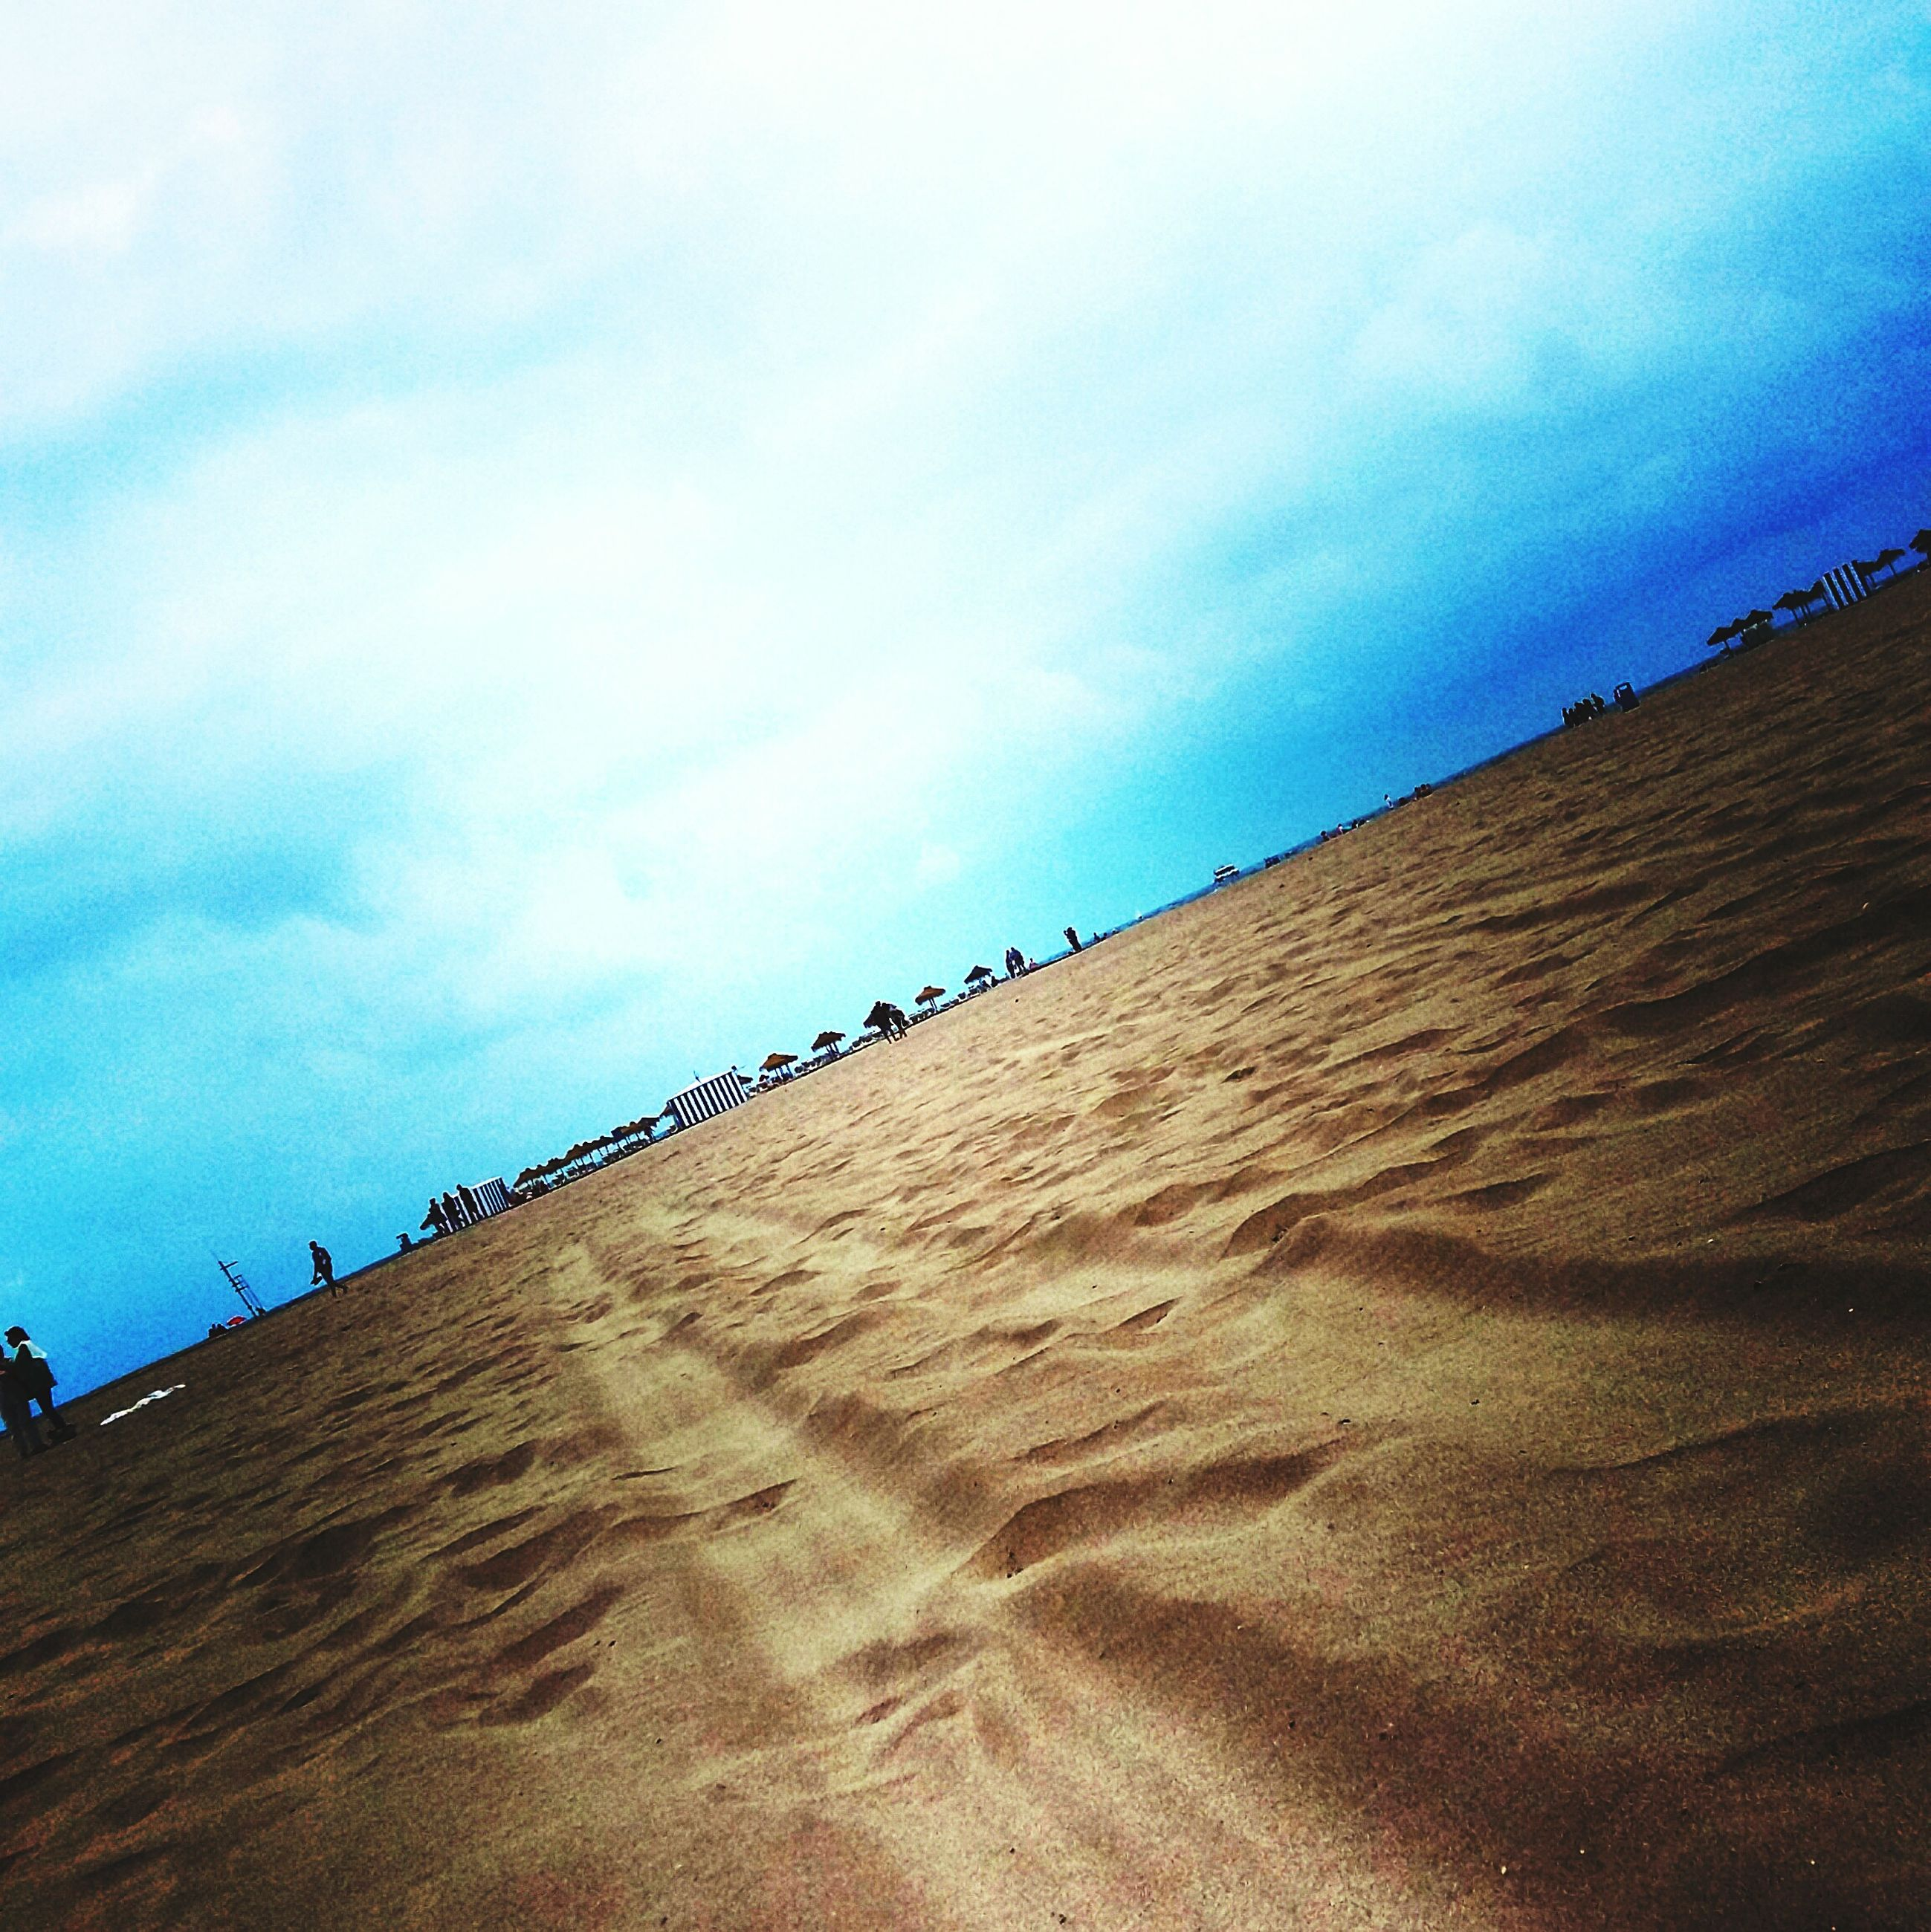 sand, sky, beach, cloud - sky, tranquility, tranquil scene, blue, cloud, nature, scenics, cloudy, day, low angle view, built structure, beauty in nature, landscape, outdoors, desert, footprint, no people